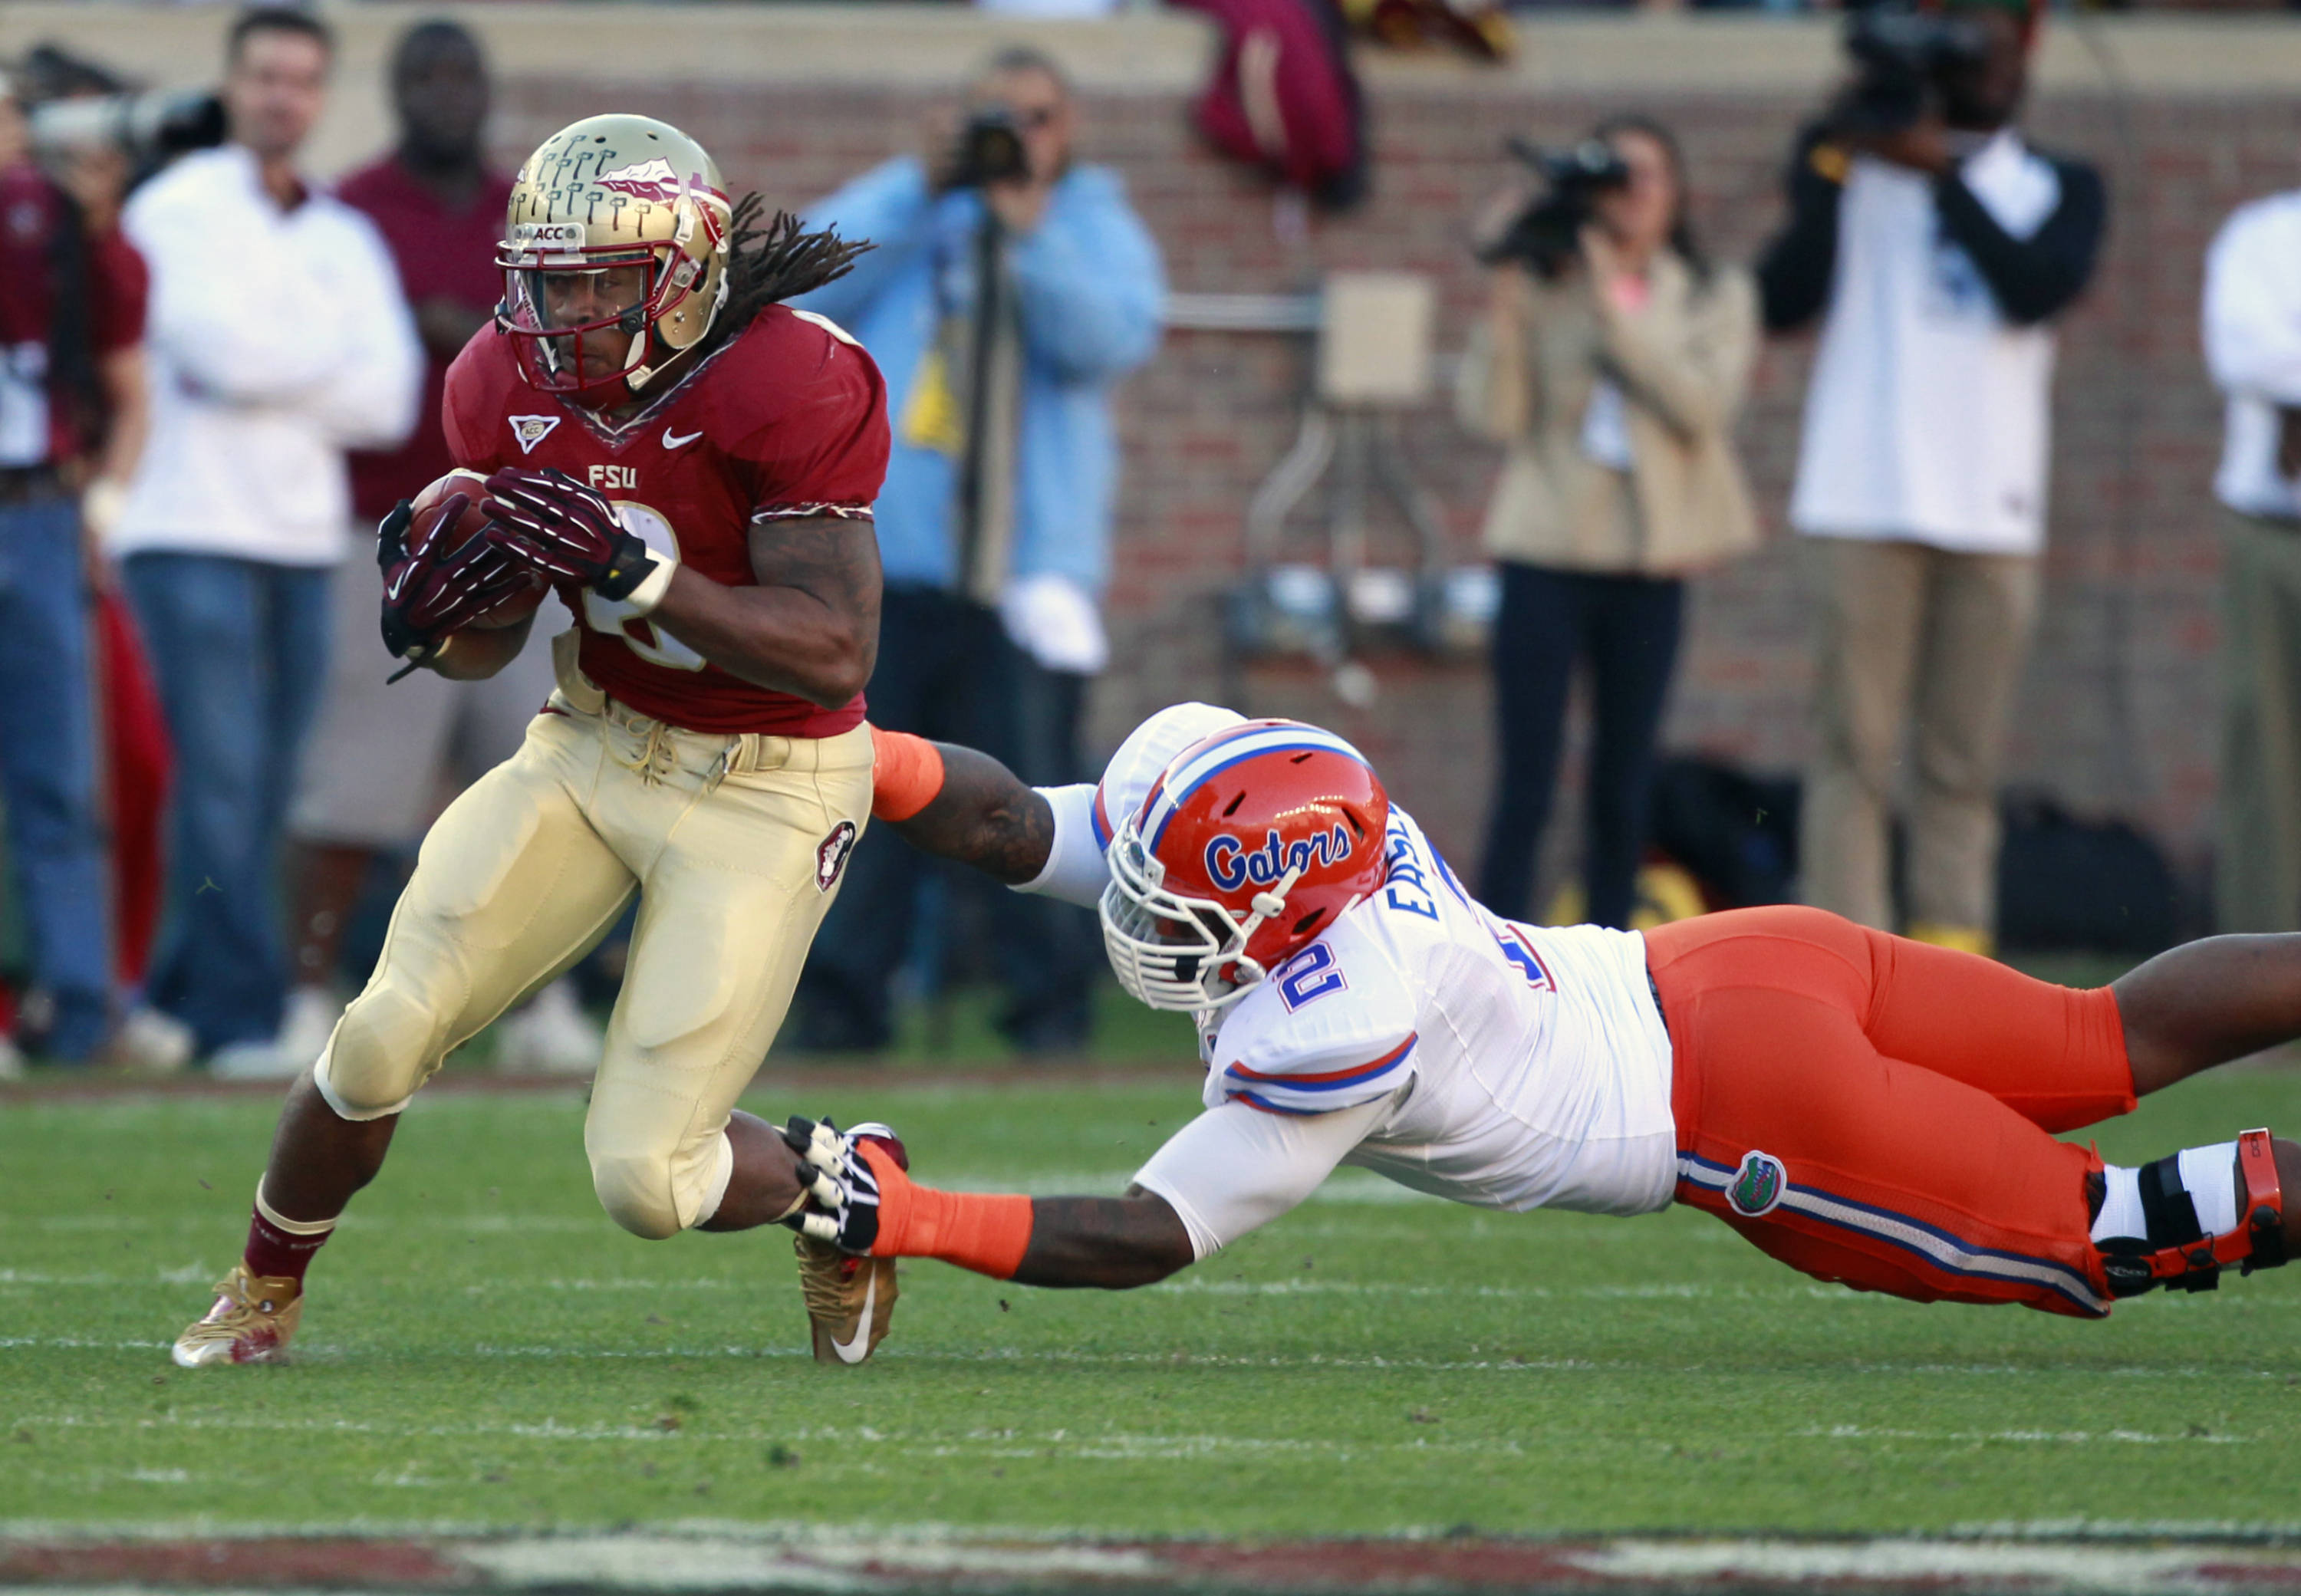 Florida State running back Devonta Freeman runs past Florida defensive lineman Dominique Easley (2). (AP Photo/John Raoux)